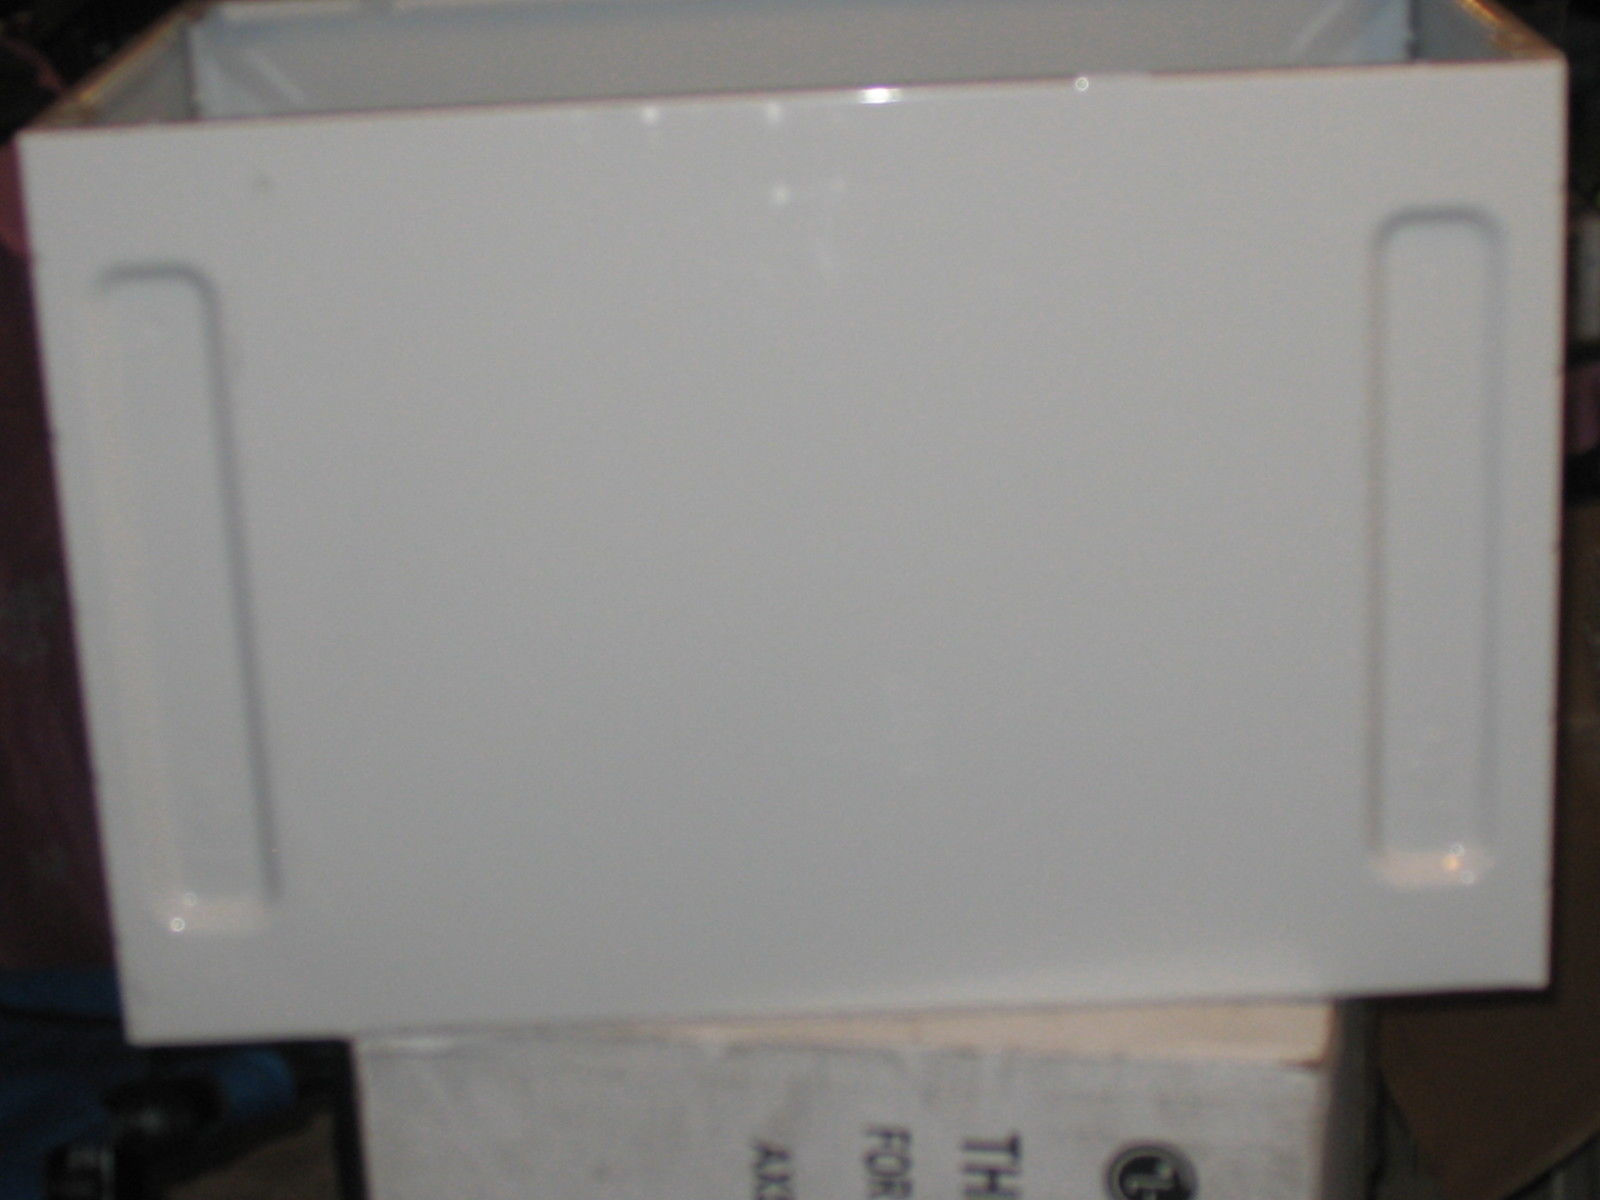 #5C4C46   57.jpg Best 10603 Air Conditioner Wall Sleeve photos with 1600x1200 px on helpvideos.info - Air Conditioners, Air Coolers and more